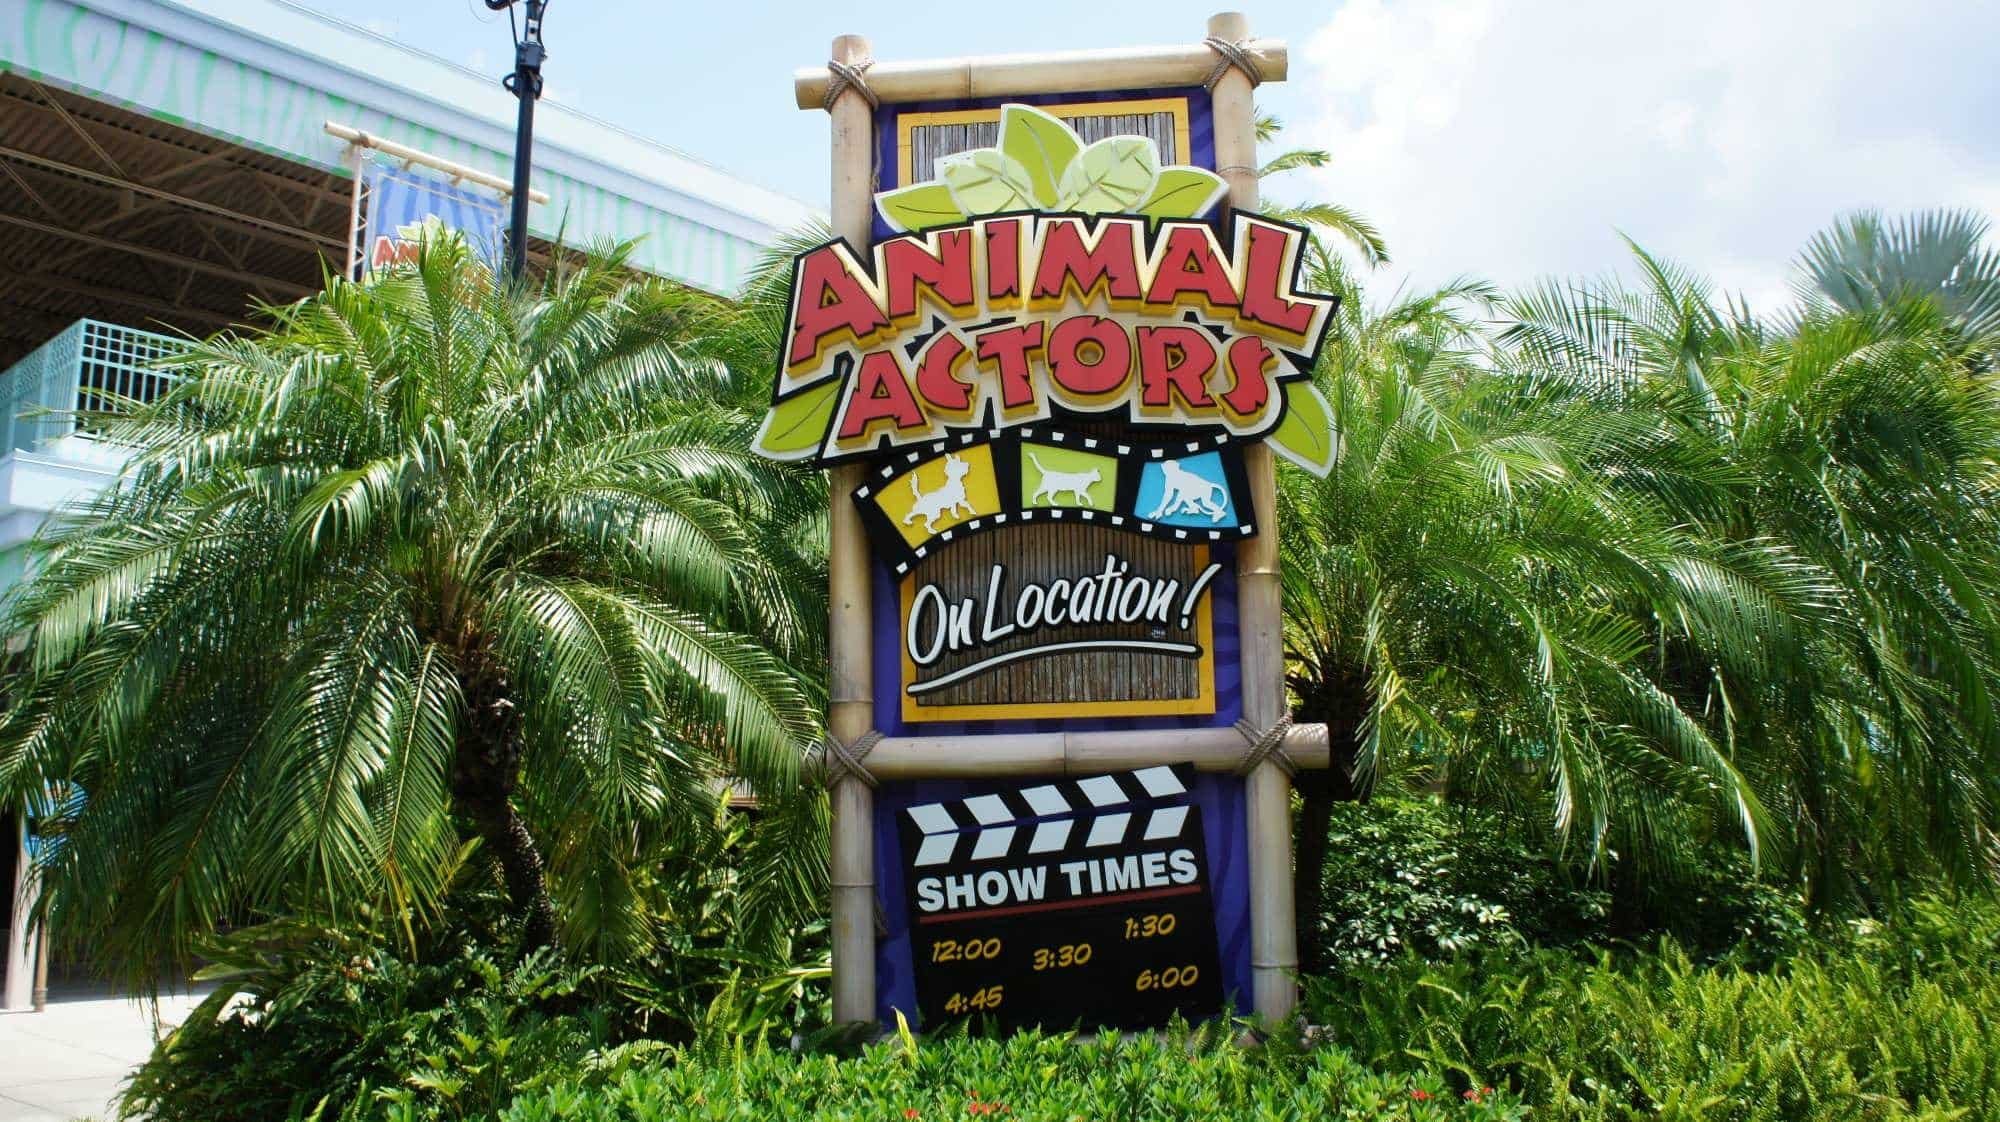 Shows, paradas e apresentações no parque Universal Studios em Orlando: Animal Actors On Location!